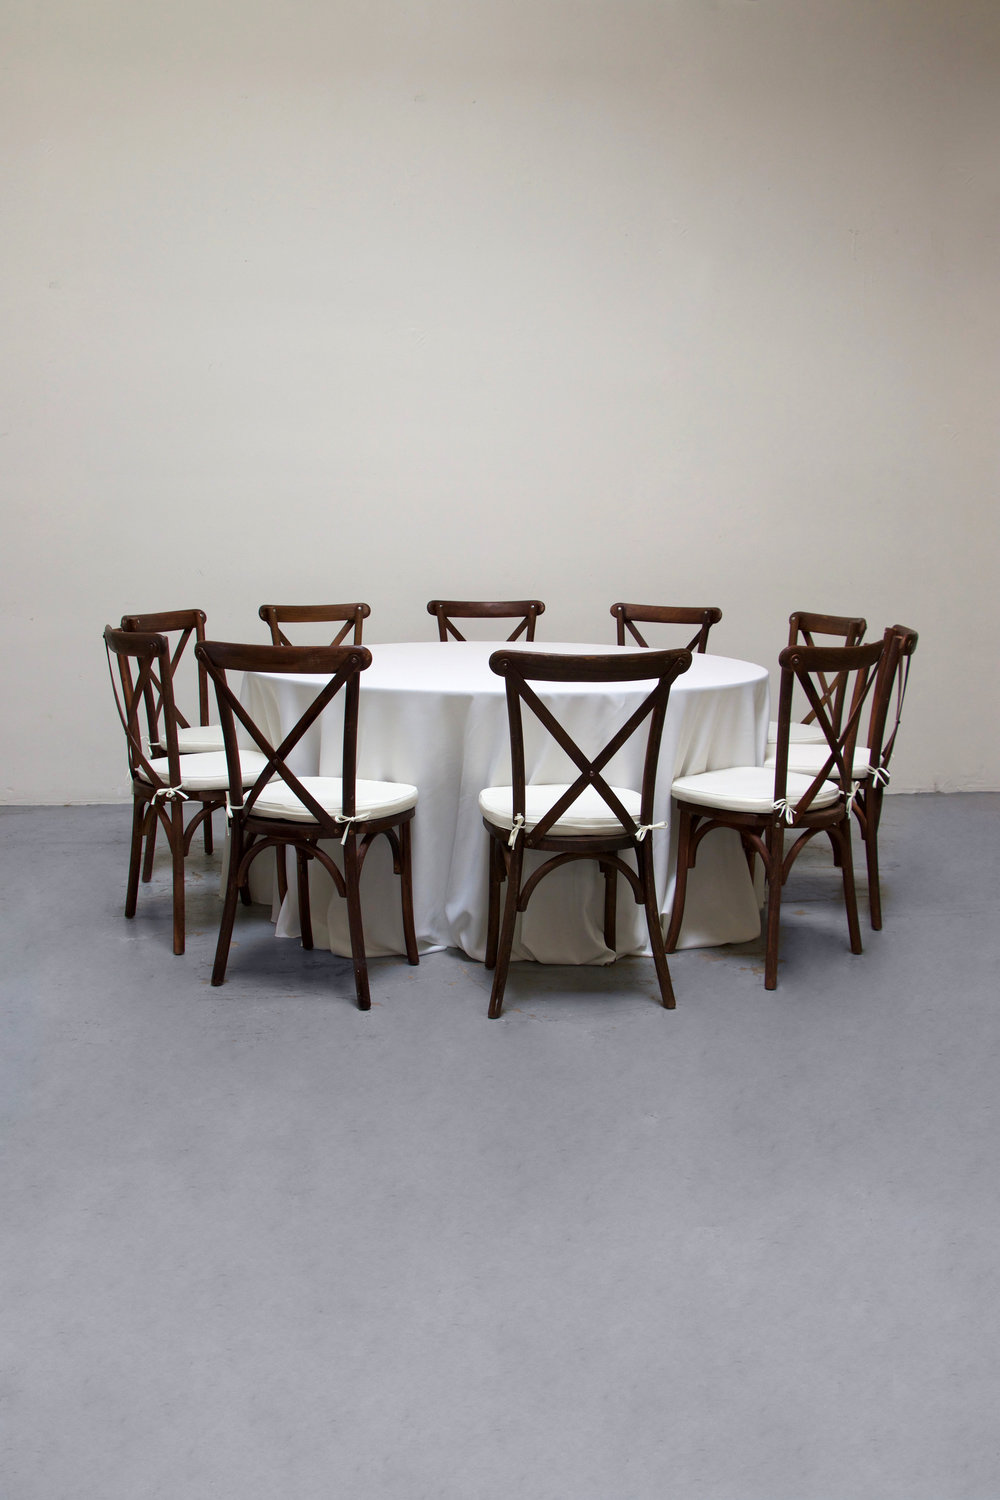 1 Round Banquet w/ 10 Cross-Back Chairs $100